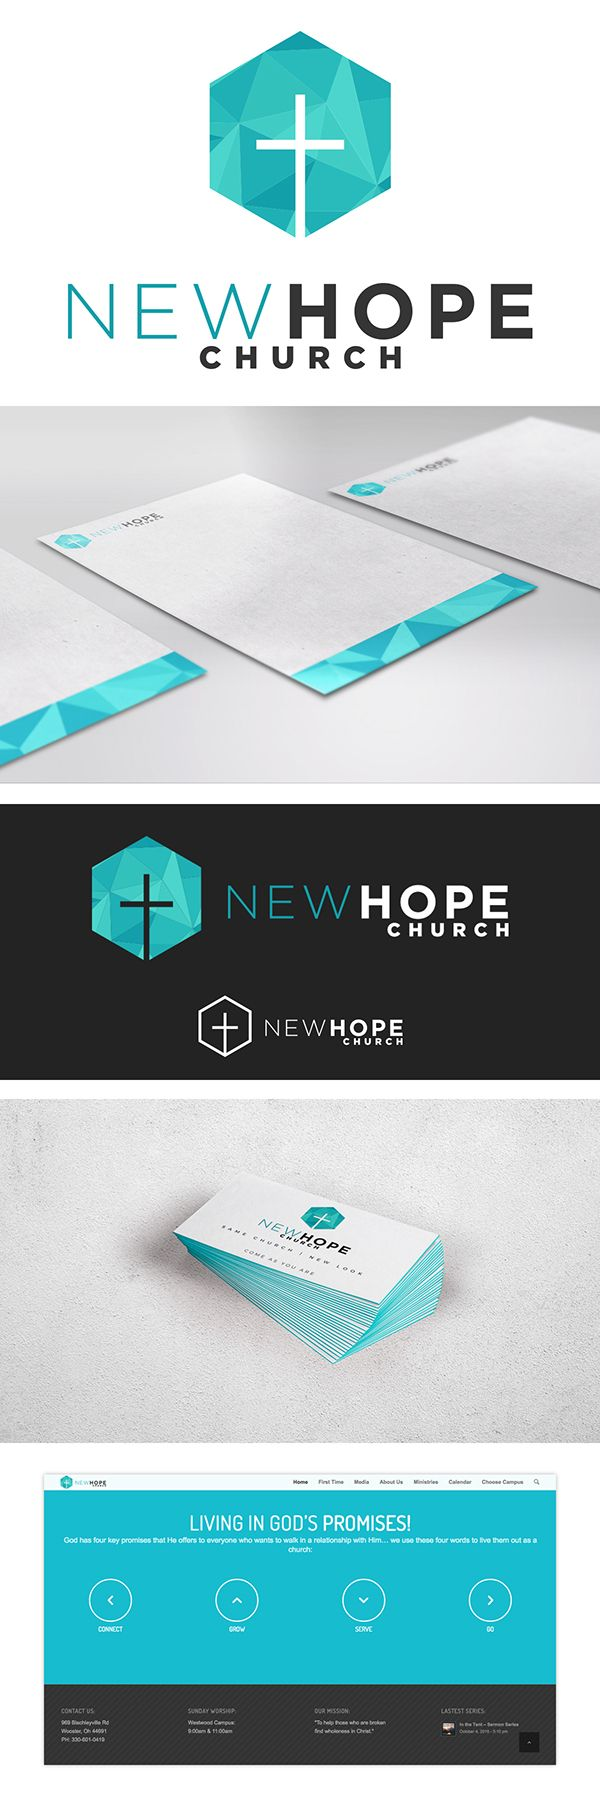 New Hope Church Logo done by 320 Creative, check us out at 320creative.org or www.facebook.com/320creative.mn